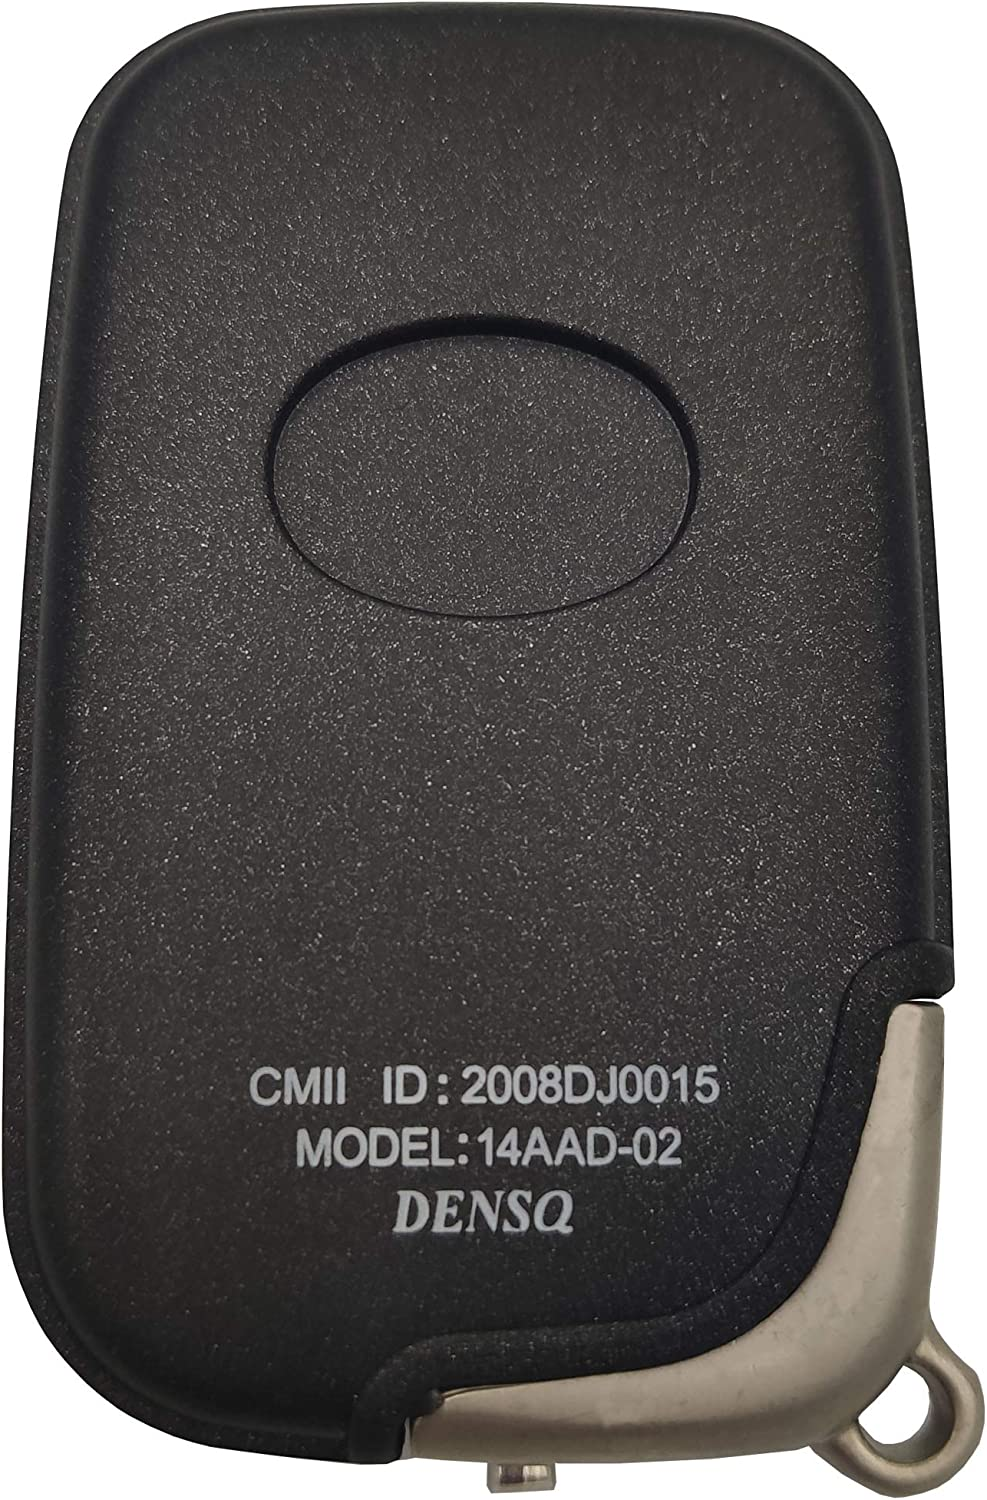 GS430 2005-2007 IS350 2006-2012 LX570 2008-2013 Key Shell Replacement for 4 Buttons ES350 2007-2014 RX350 2008-2013 Entry Smart Remote Control Key Fob Case IS250 2007-2012 GS350 2007-2014